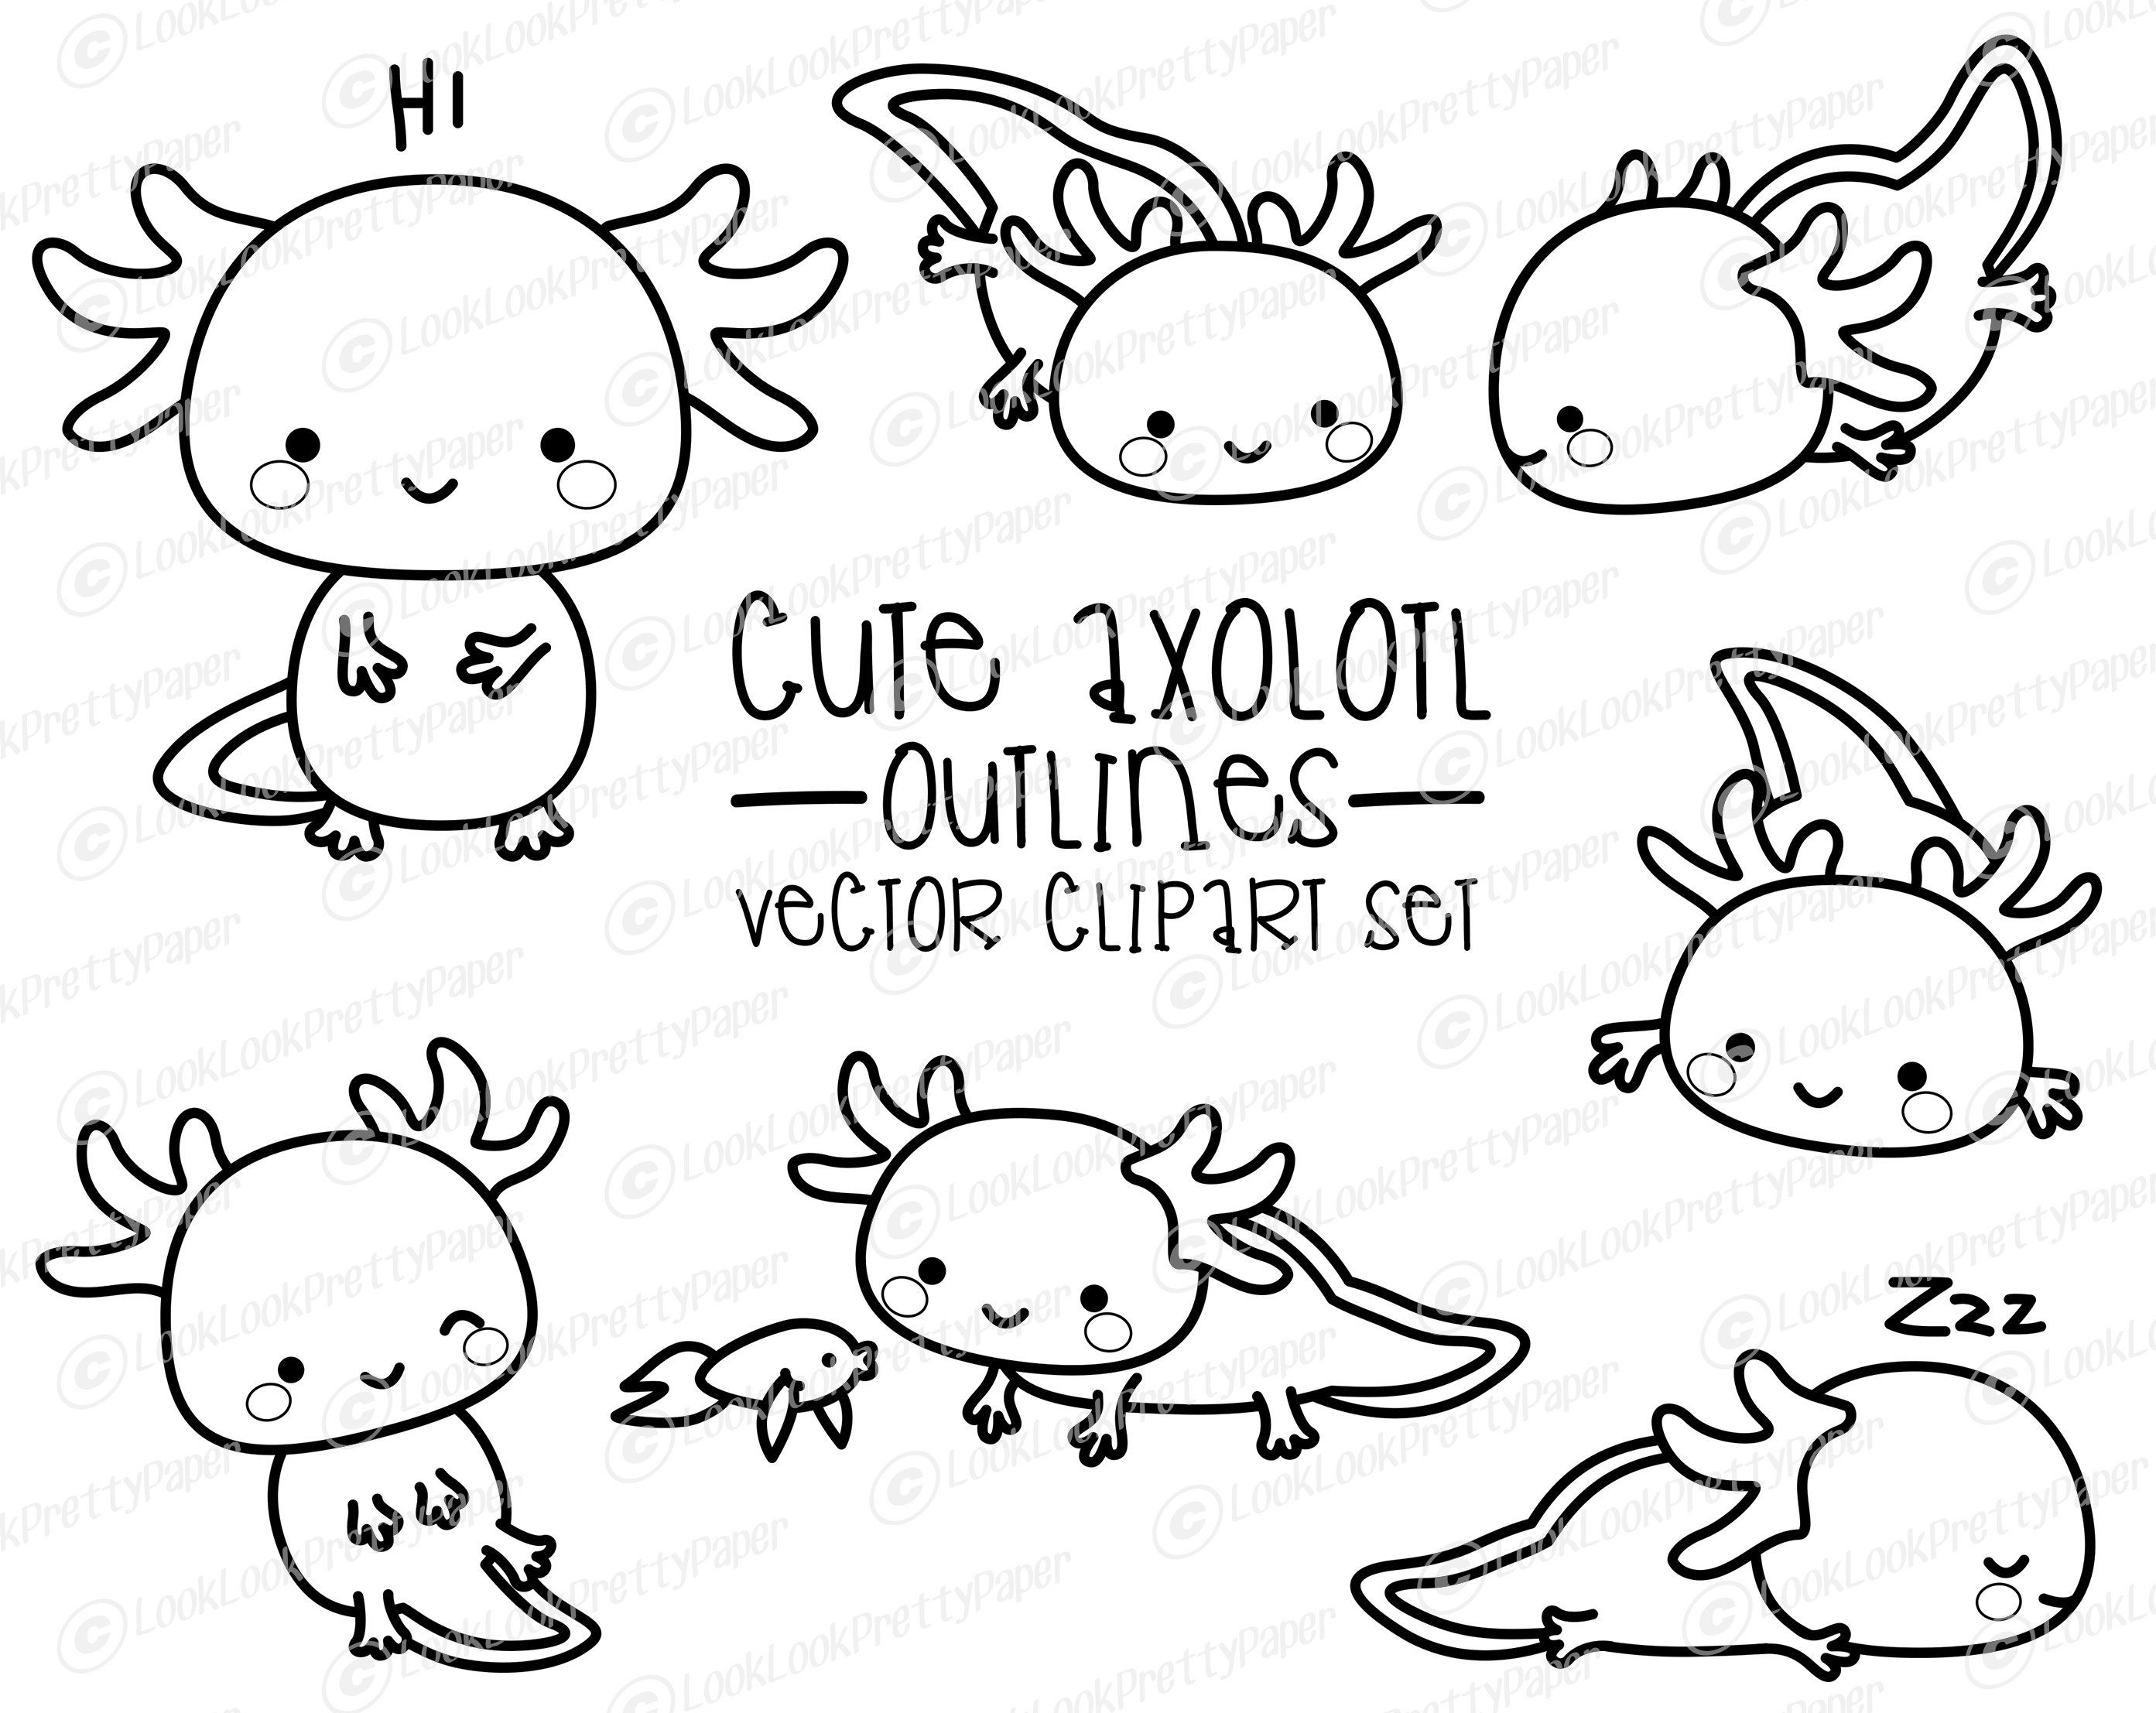 Premium Vector Clipart Kawaii Axolotl Outlines Cute Axolotl Outlines Clipart Set High Quality Vectors Instant Download Clip Art Axolotl Kawaii Clipart